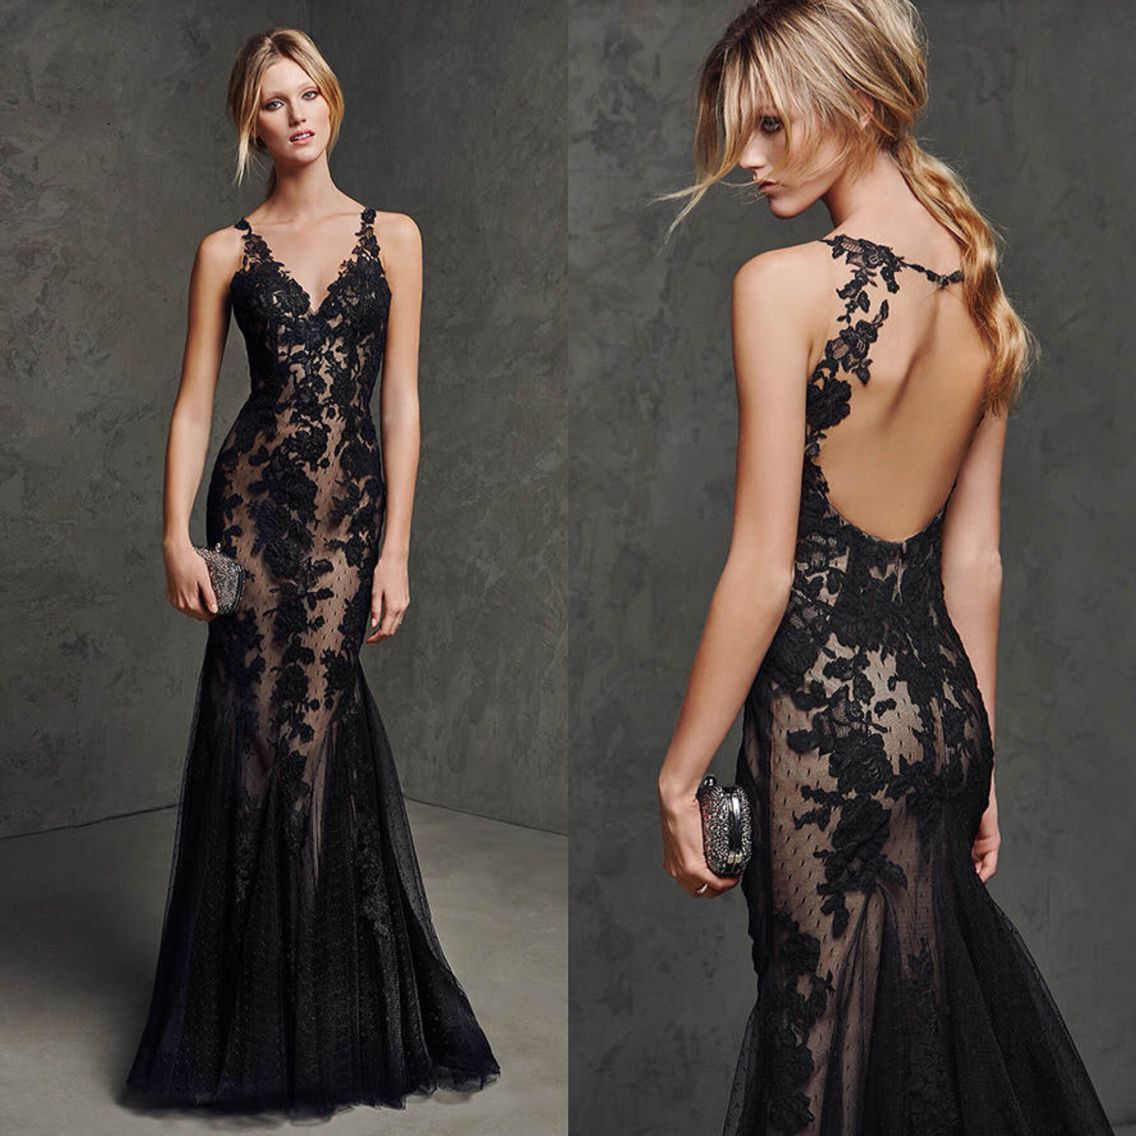 Lasta By Pronovias What Do You Think About This Dress Yay Or Nay